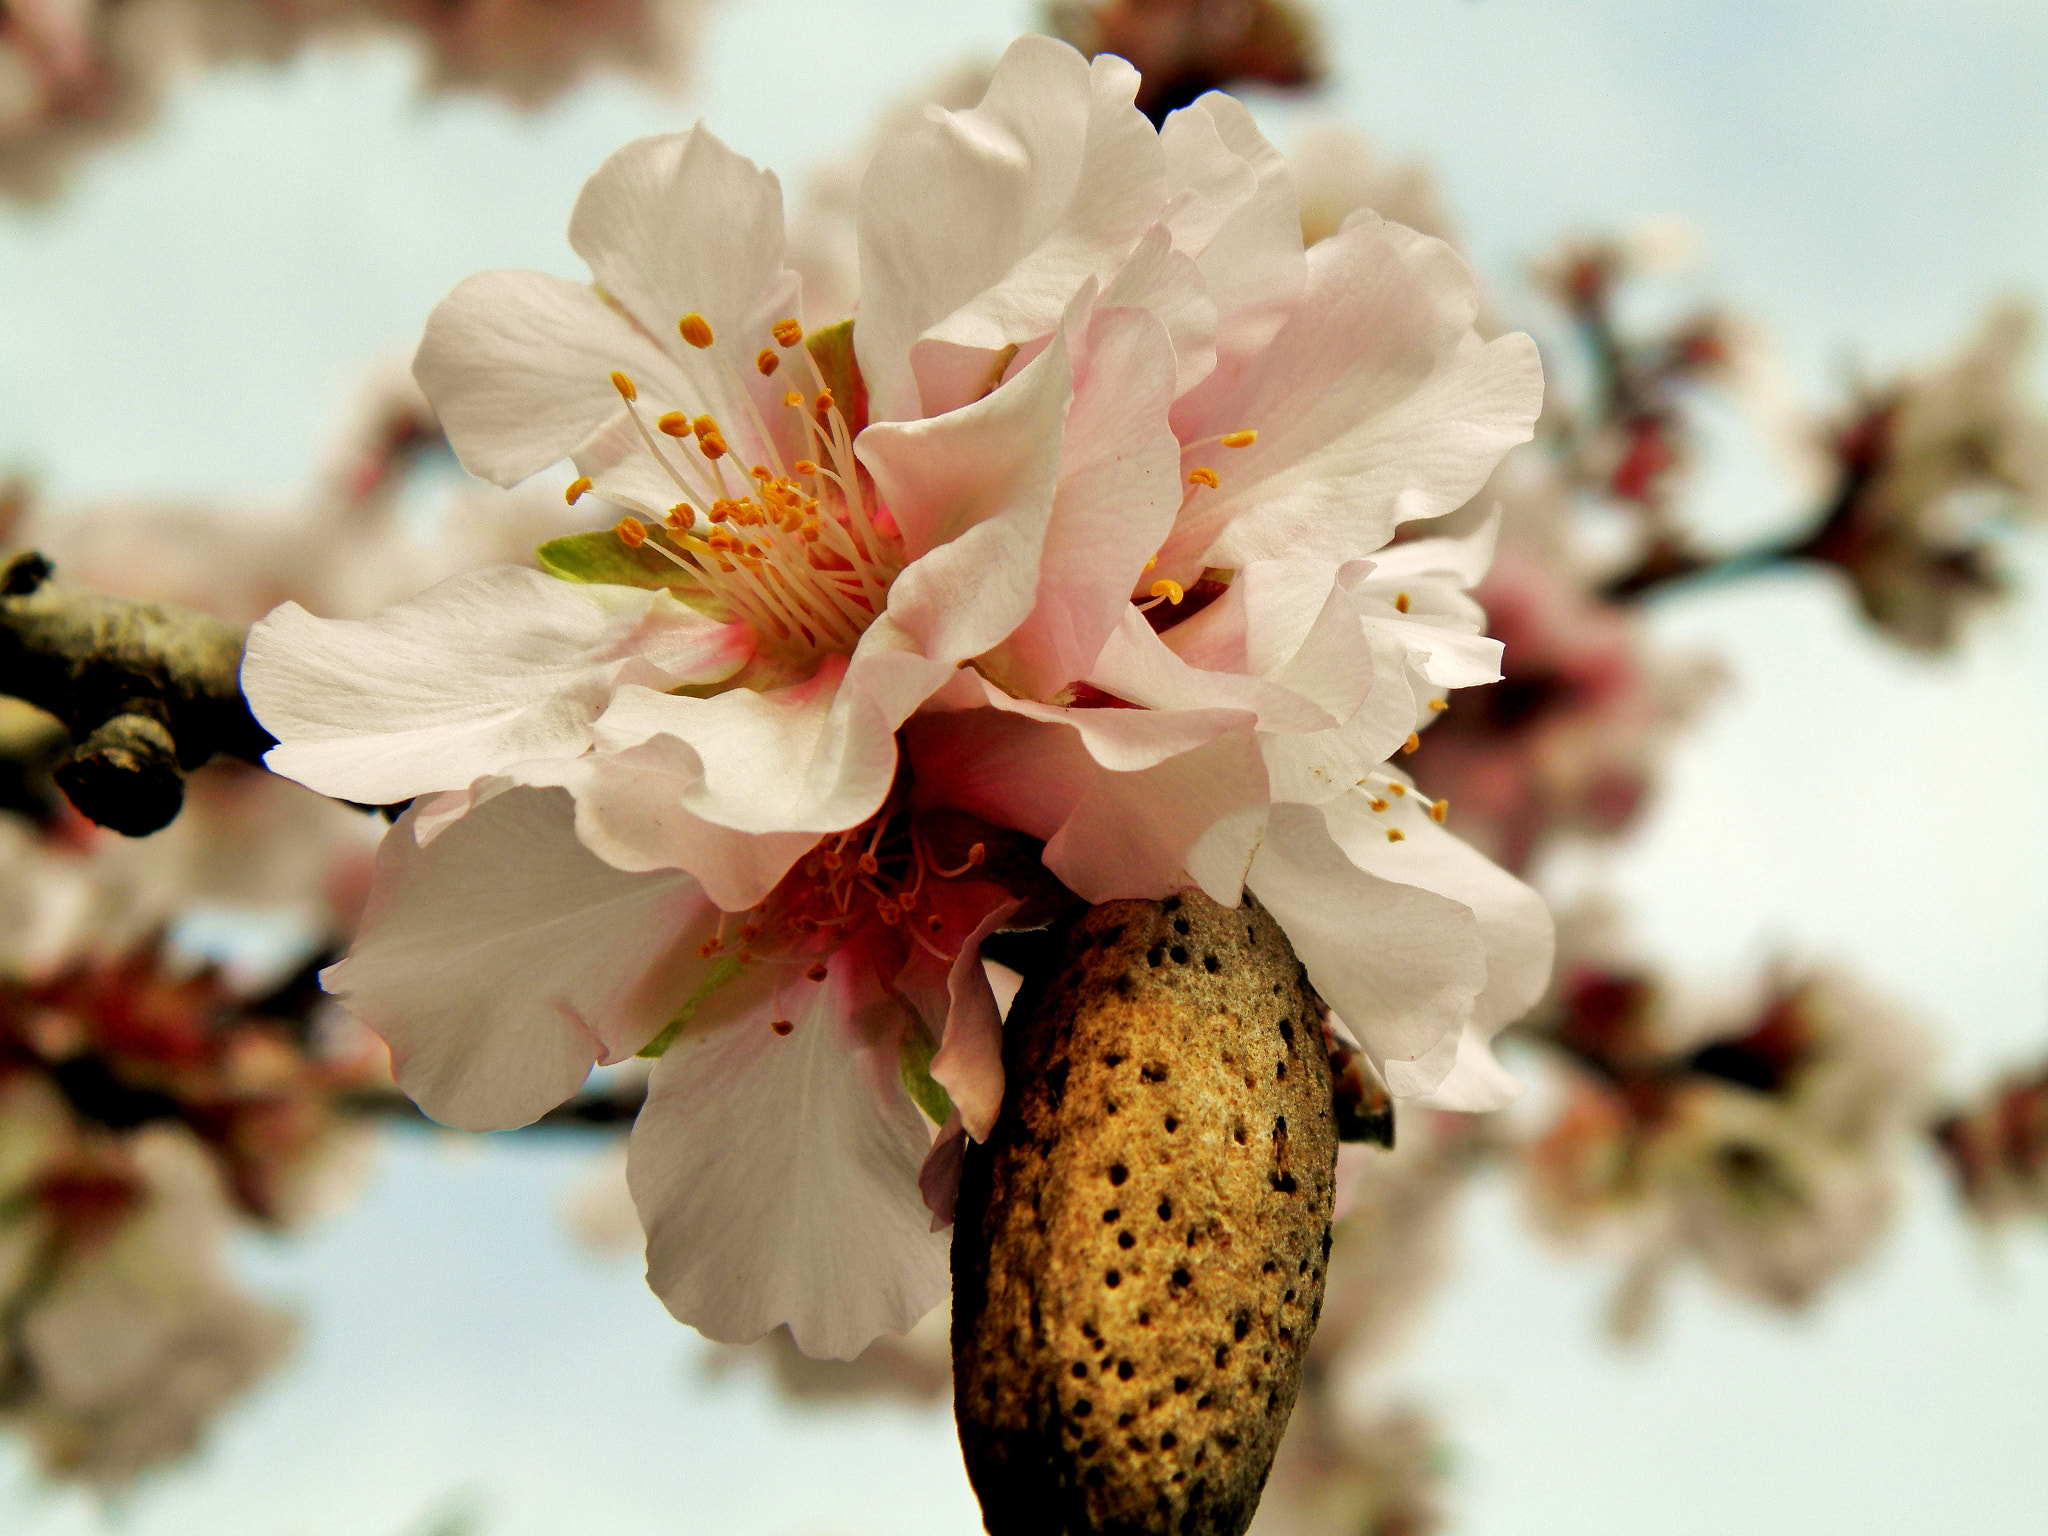 Photograph Almond by Magda DJM on 500px